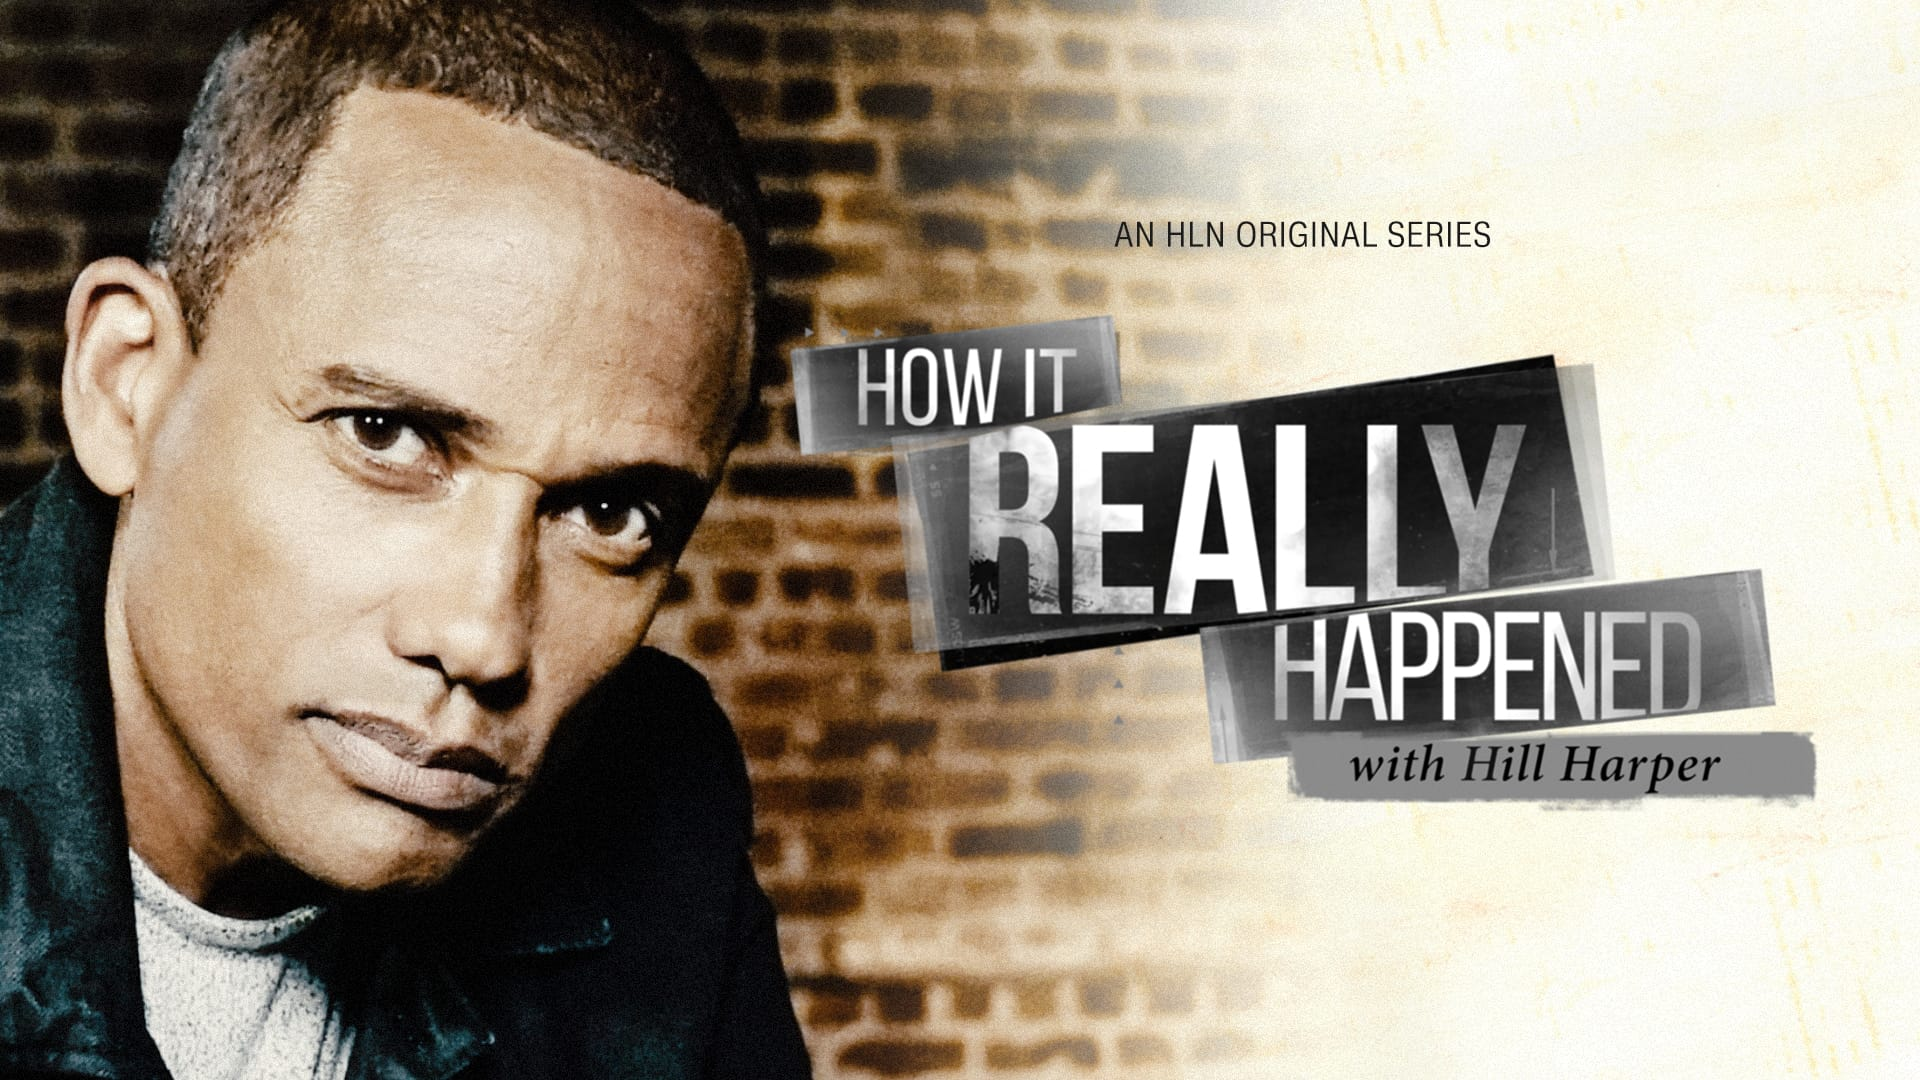 How it really happened with hill harper hln